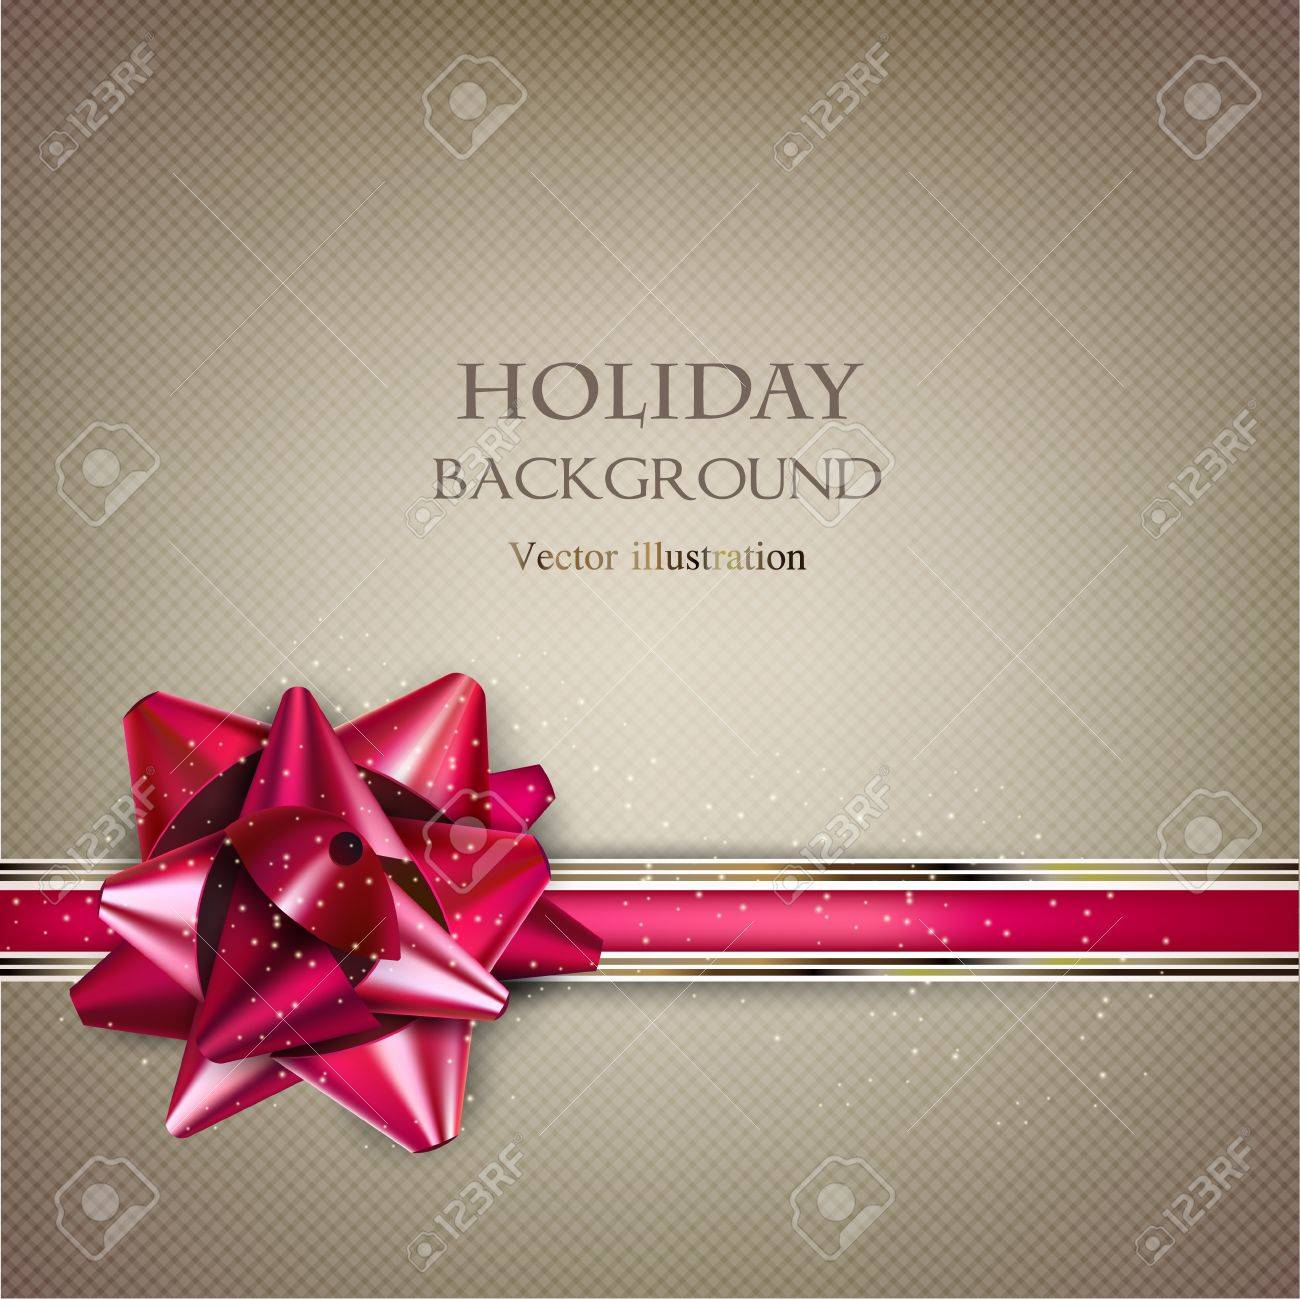 Elegant Holiday background with red bow and place for text. Vector Illustration. Stock Vector - 20988462